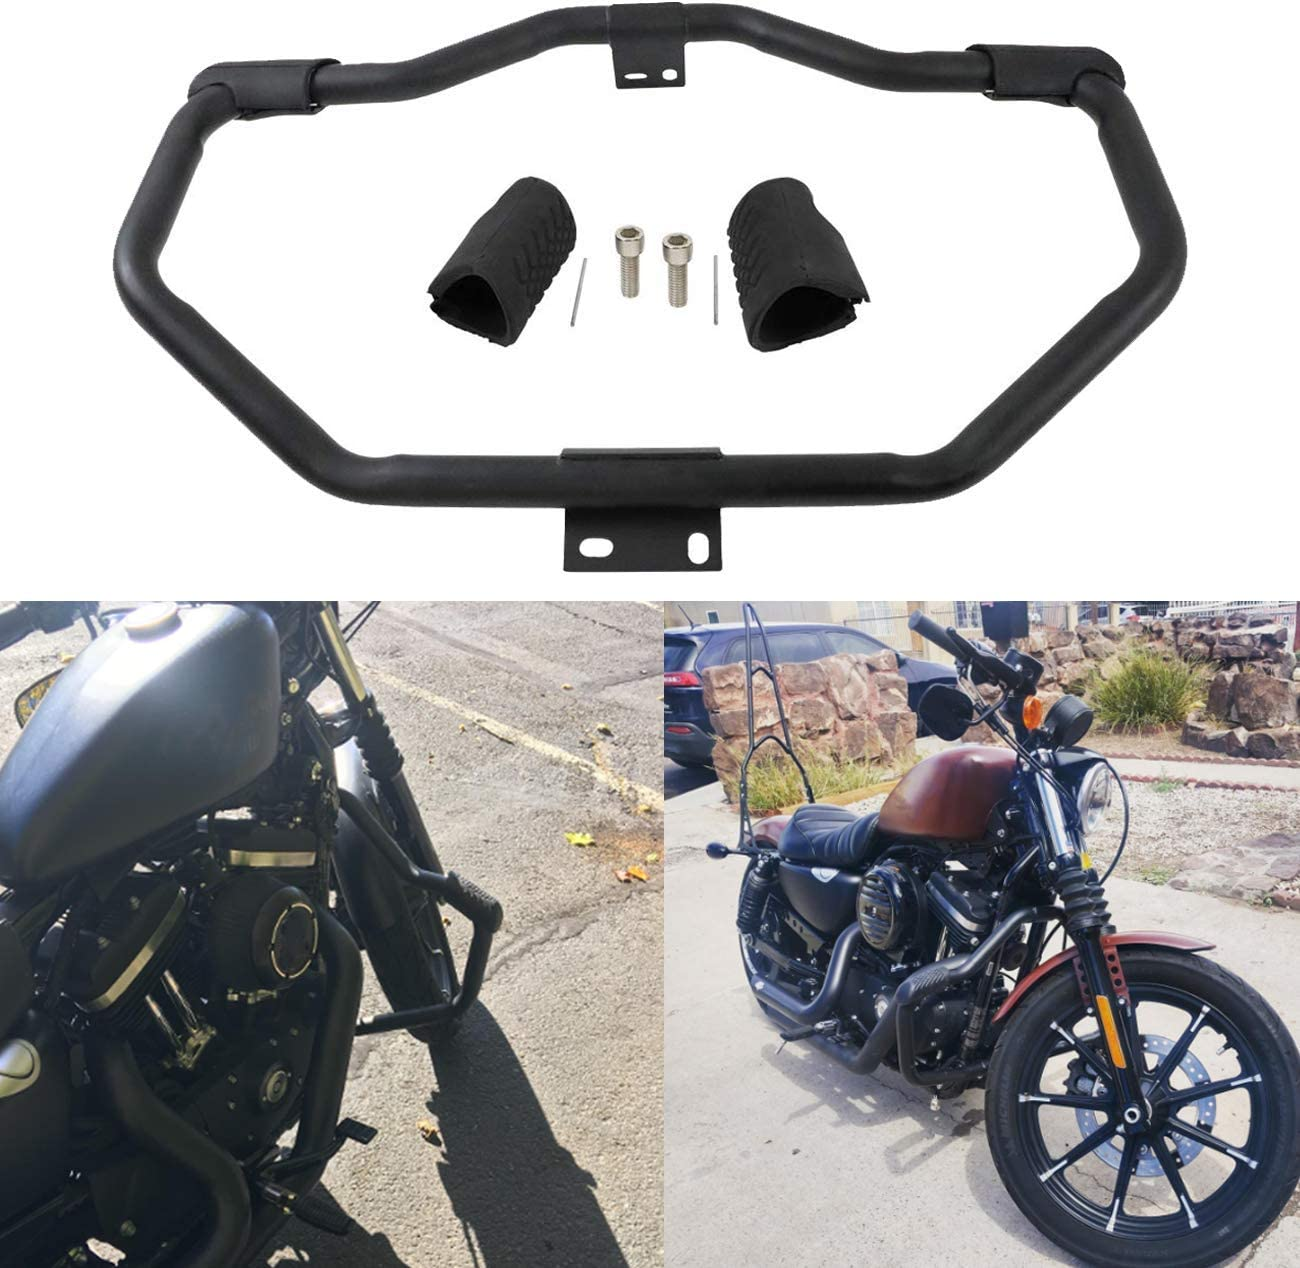 XFMT Engine Guard Highway Bar Set Compatible with Harley Sportster 1200 883 2004-2019 Iron 883 2009-2020